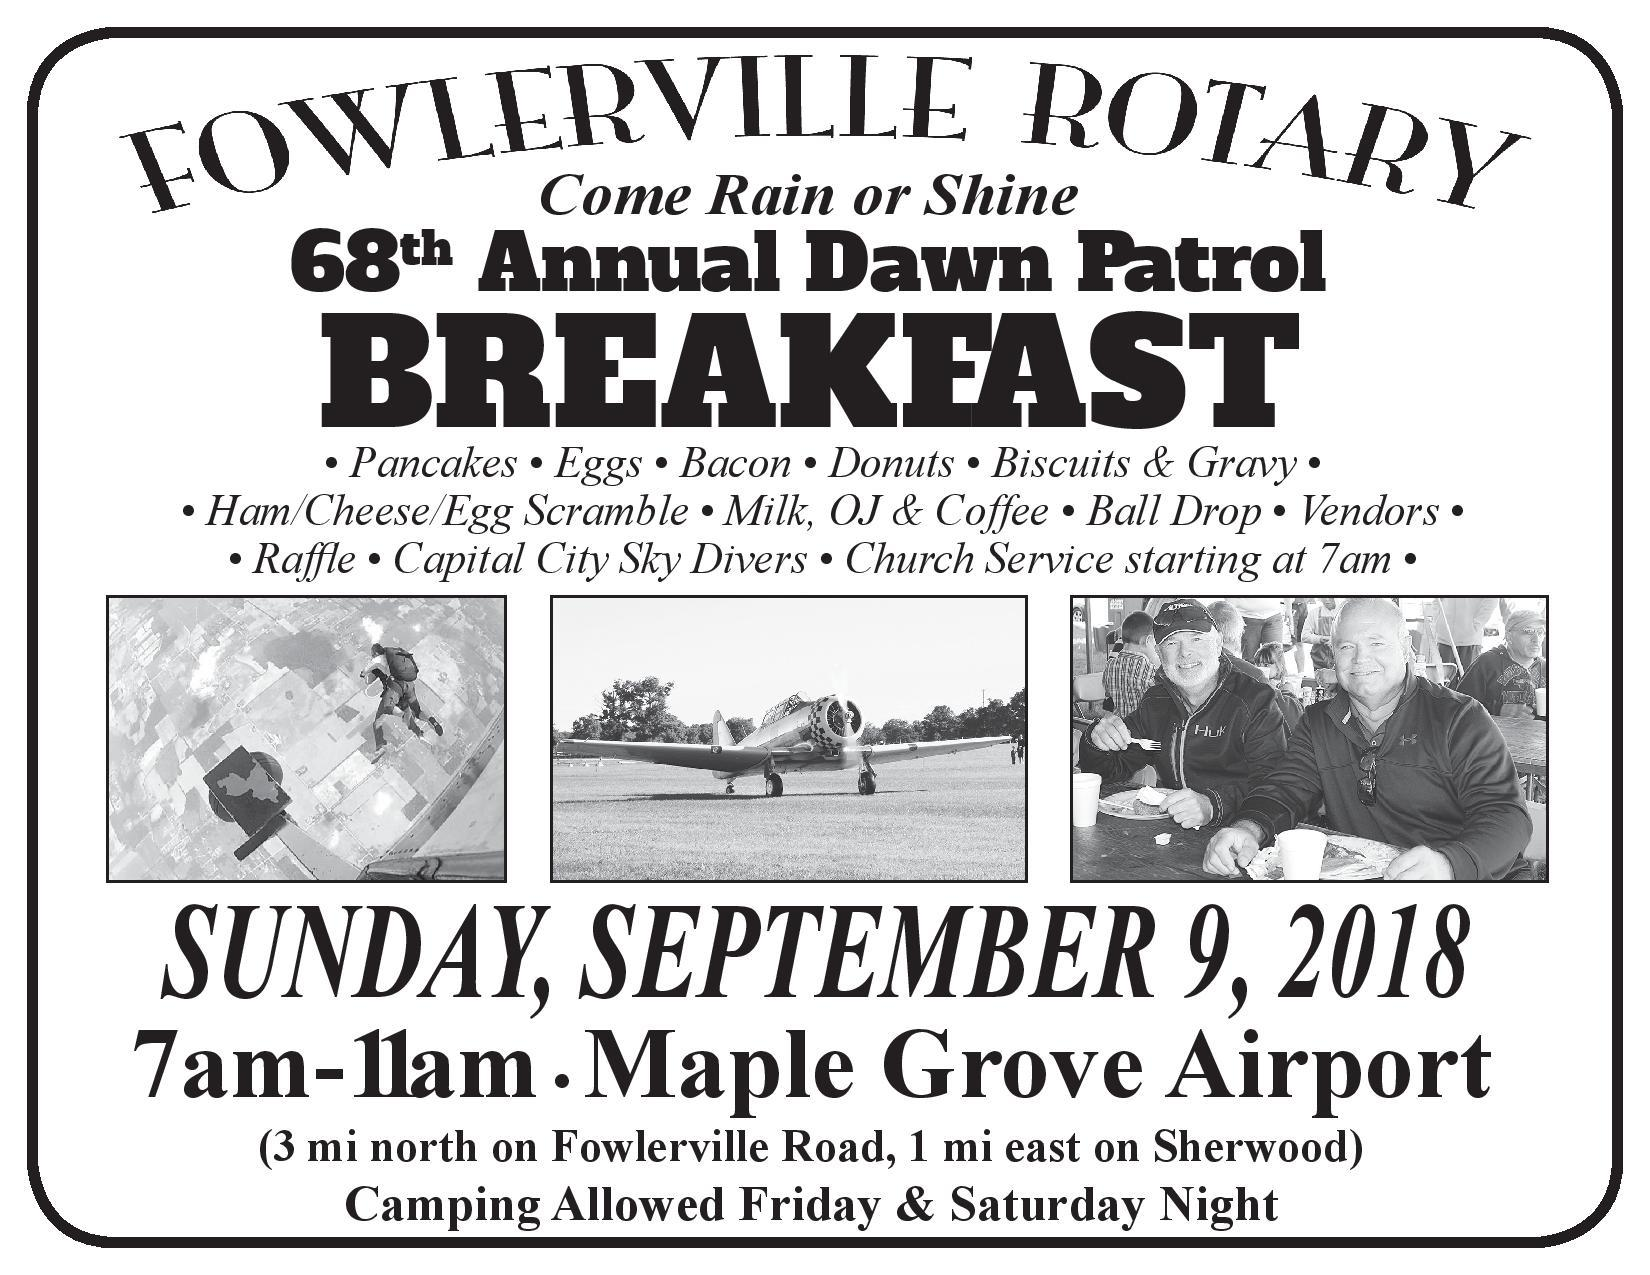 Fowlerville Rotary 68th Annual Dawn Patrol Breakfast